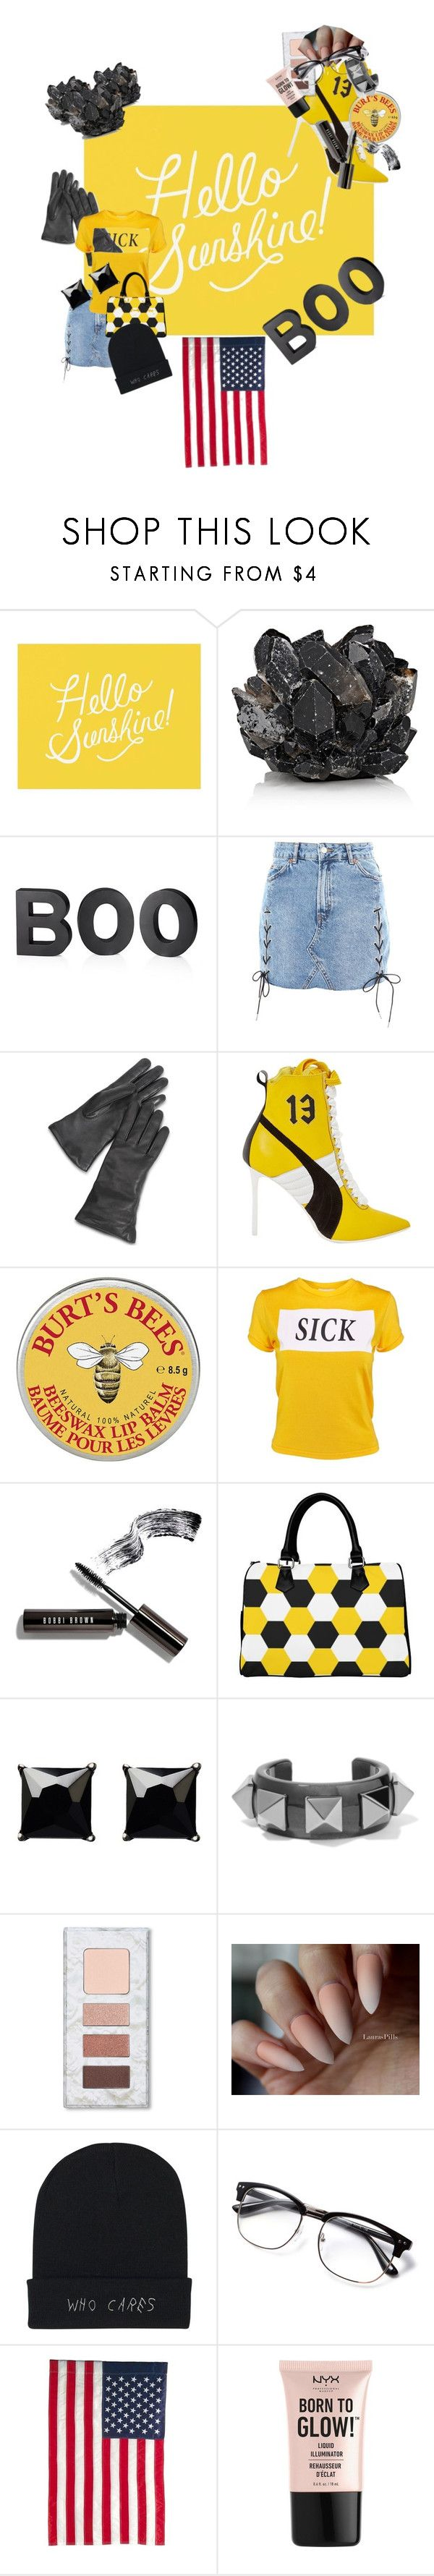 """""""Boots"""" by ellled ❤ liked on Polyvore featuring Pottery Barn, McCoy Design, Crate and Barrel, Topshop, Puma, Burt's Bees, The Ragged Priest, Bobbi Brown Cosmetics, Witchery and Valentino"""